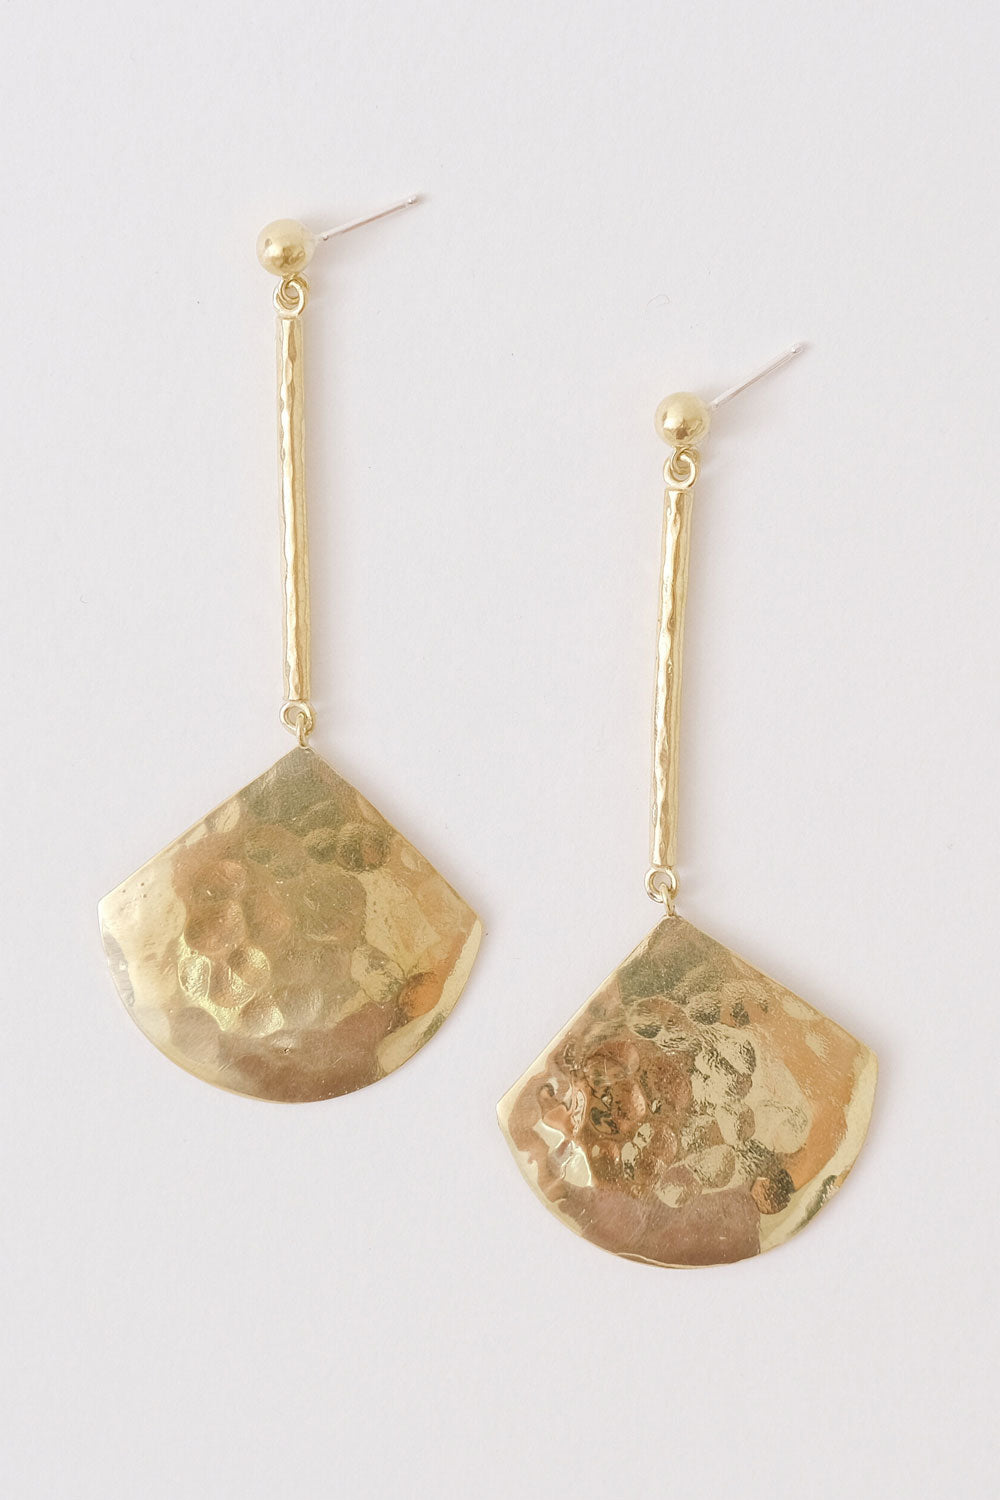 Crescioni Concha Earrings in Brass - Vert & Vogue